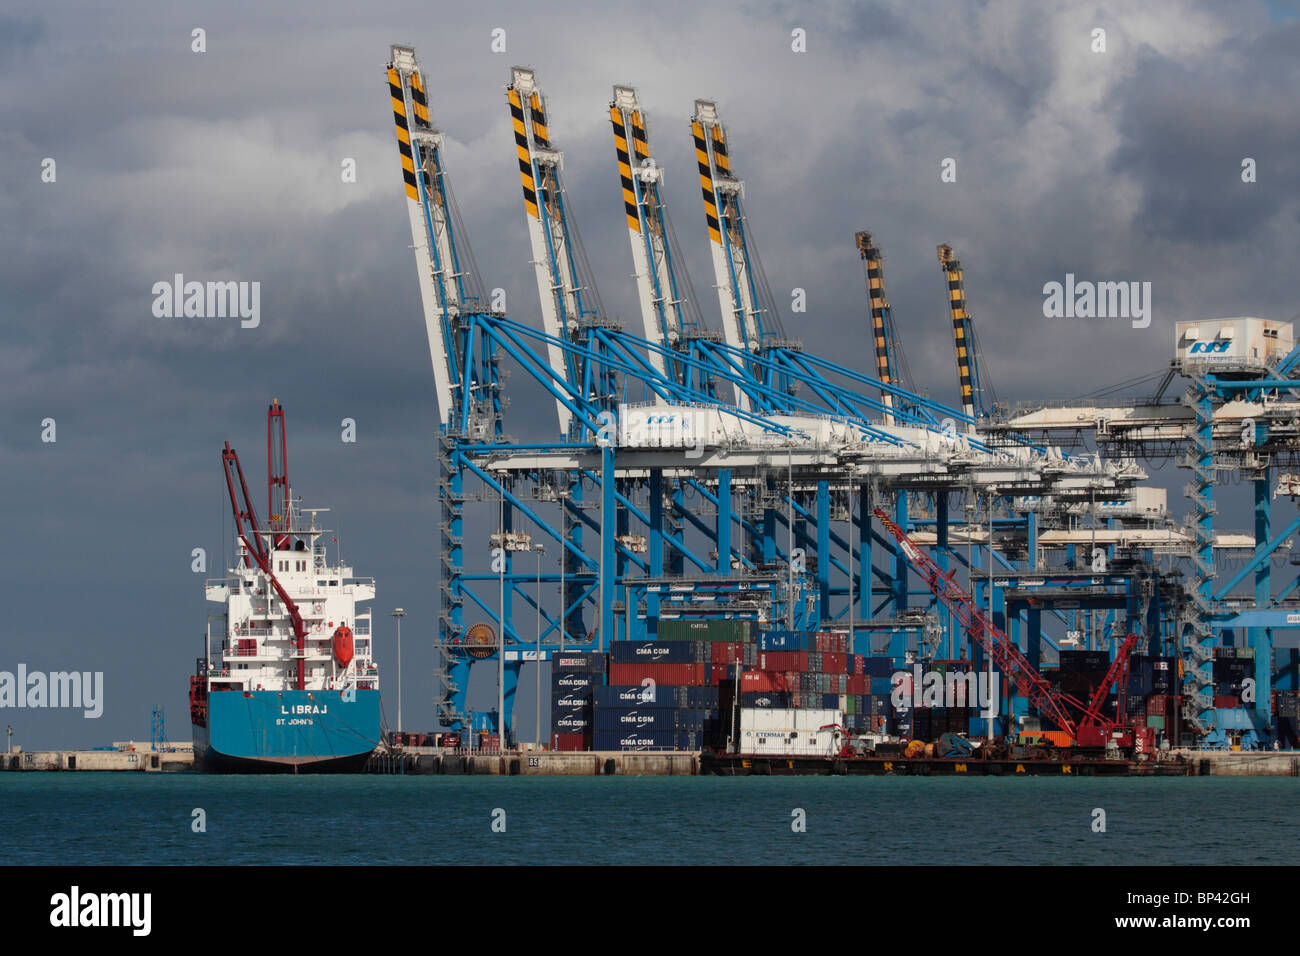 International trade by sea transport. Cargo ship at the Malta Freeport container port. Shipping, economic development - Stock Image